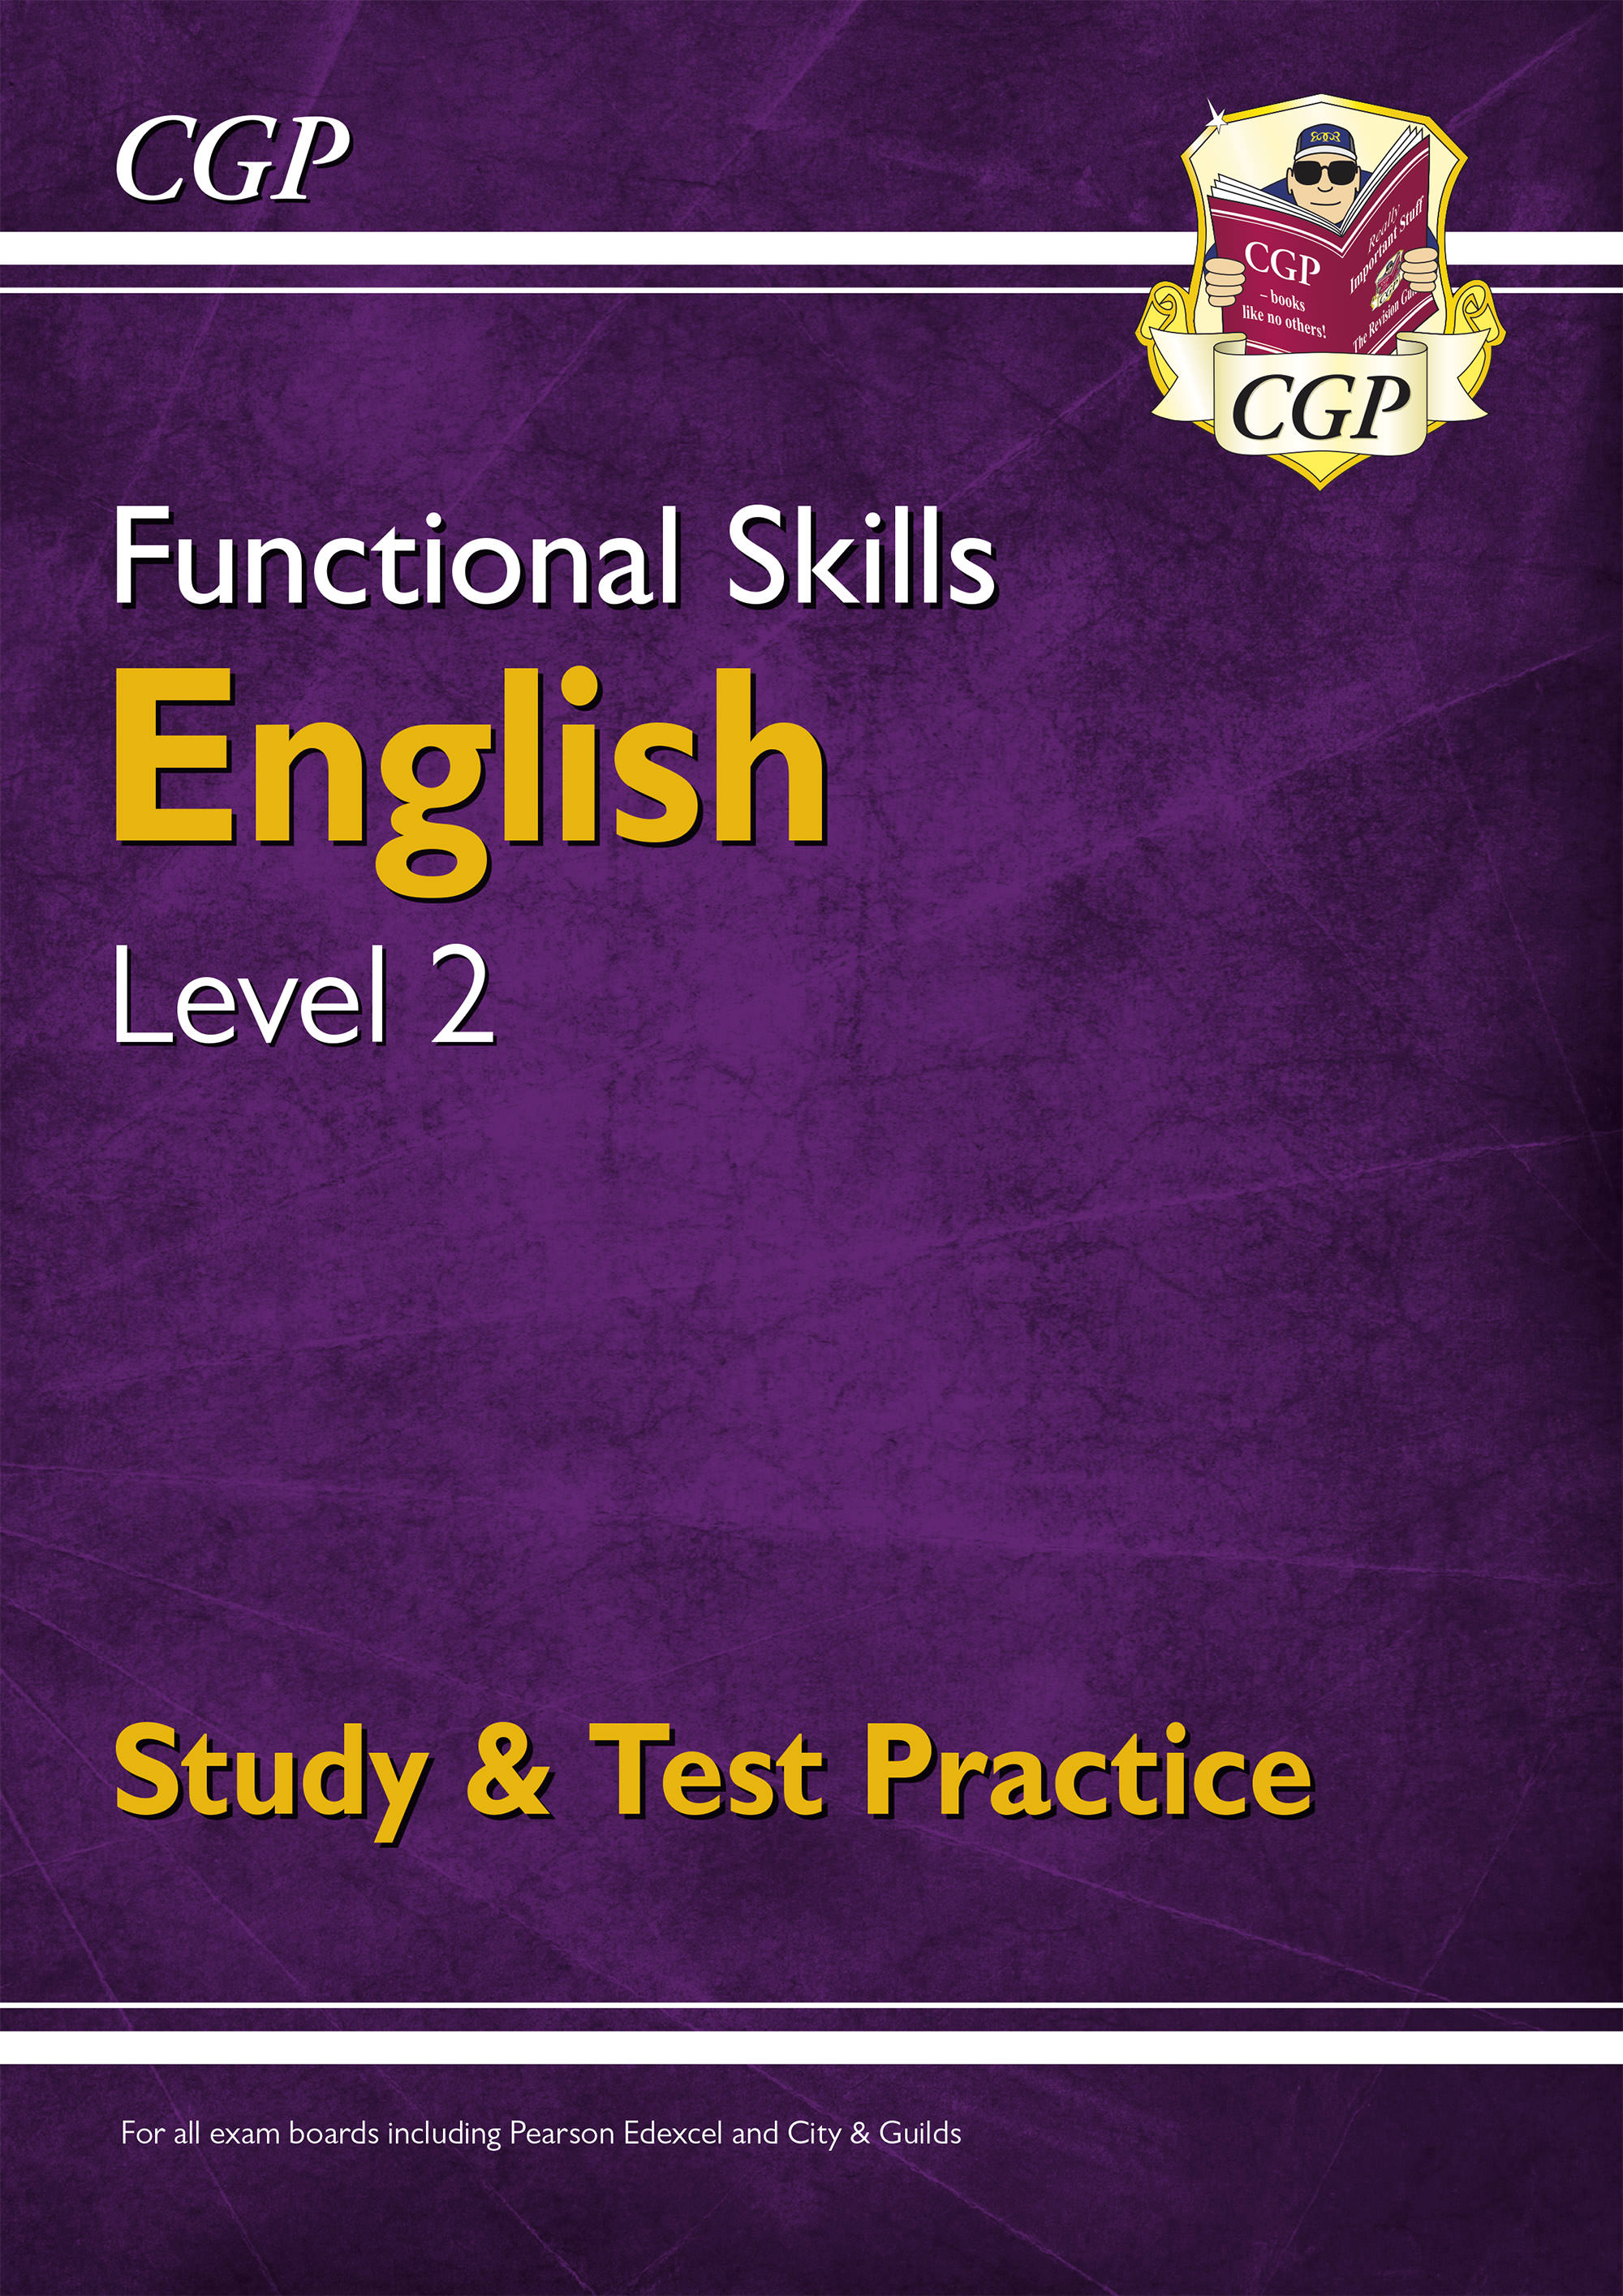 E2SRA3D - Functional Skills English Level 2 - Study & Test Practice (for 2021 & beyond) Online Editi